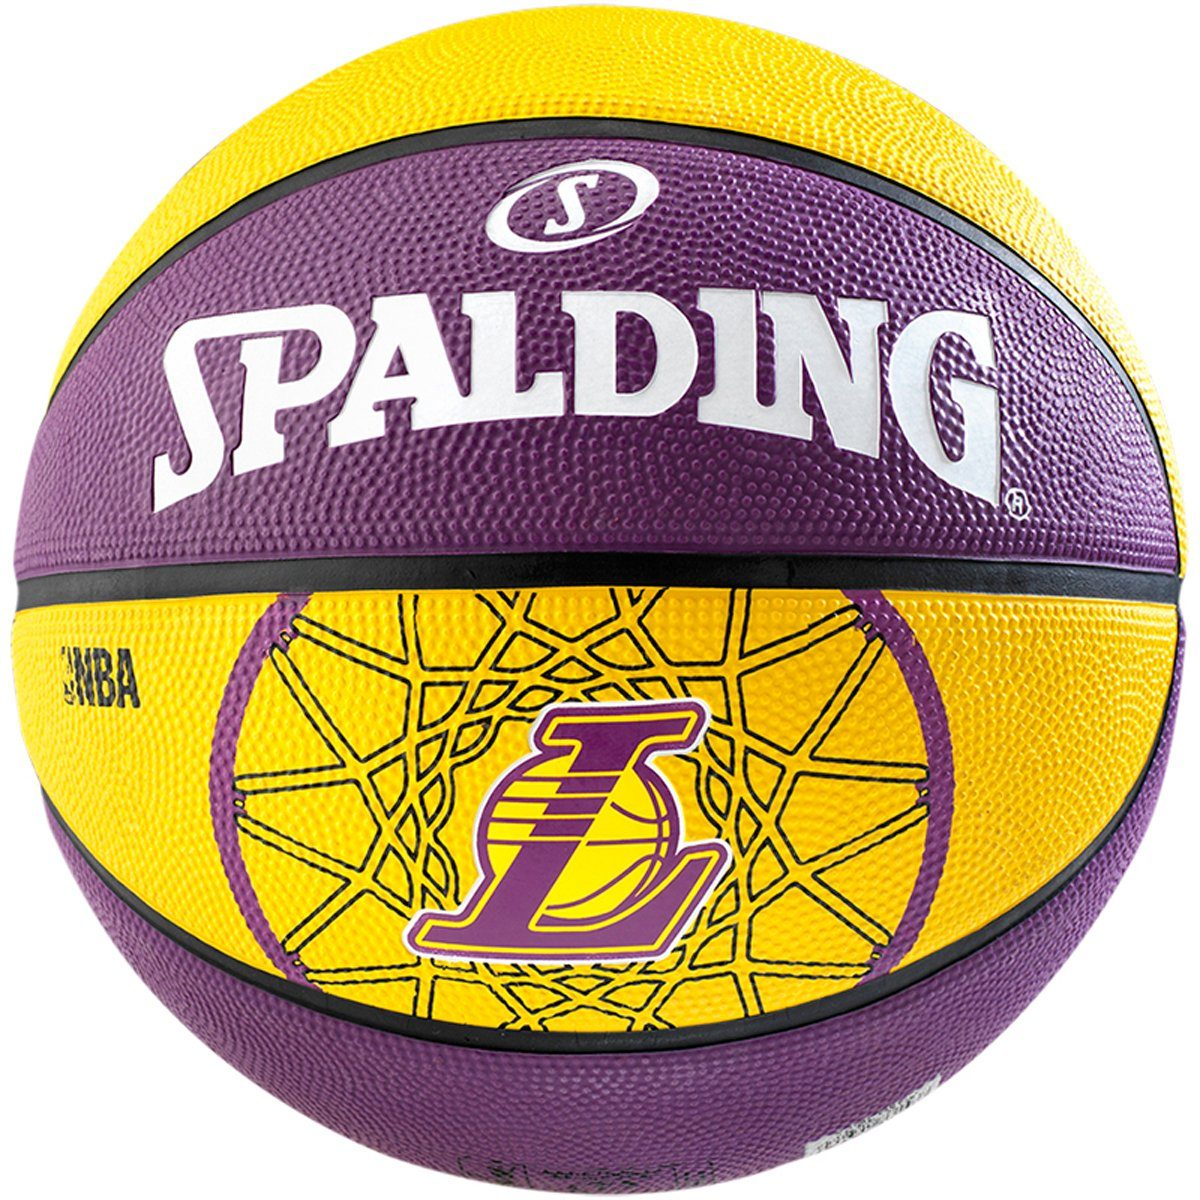 SPALDING Team Los Angeles Lakers Basketball